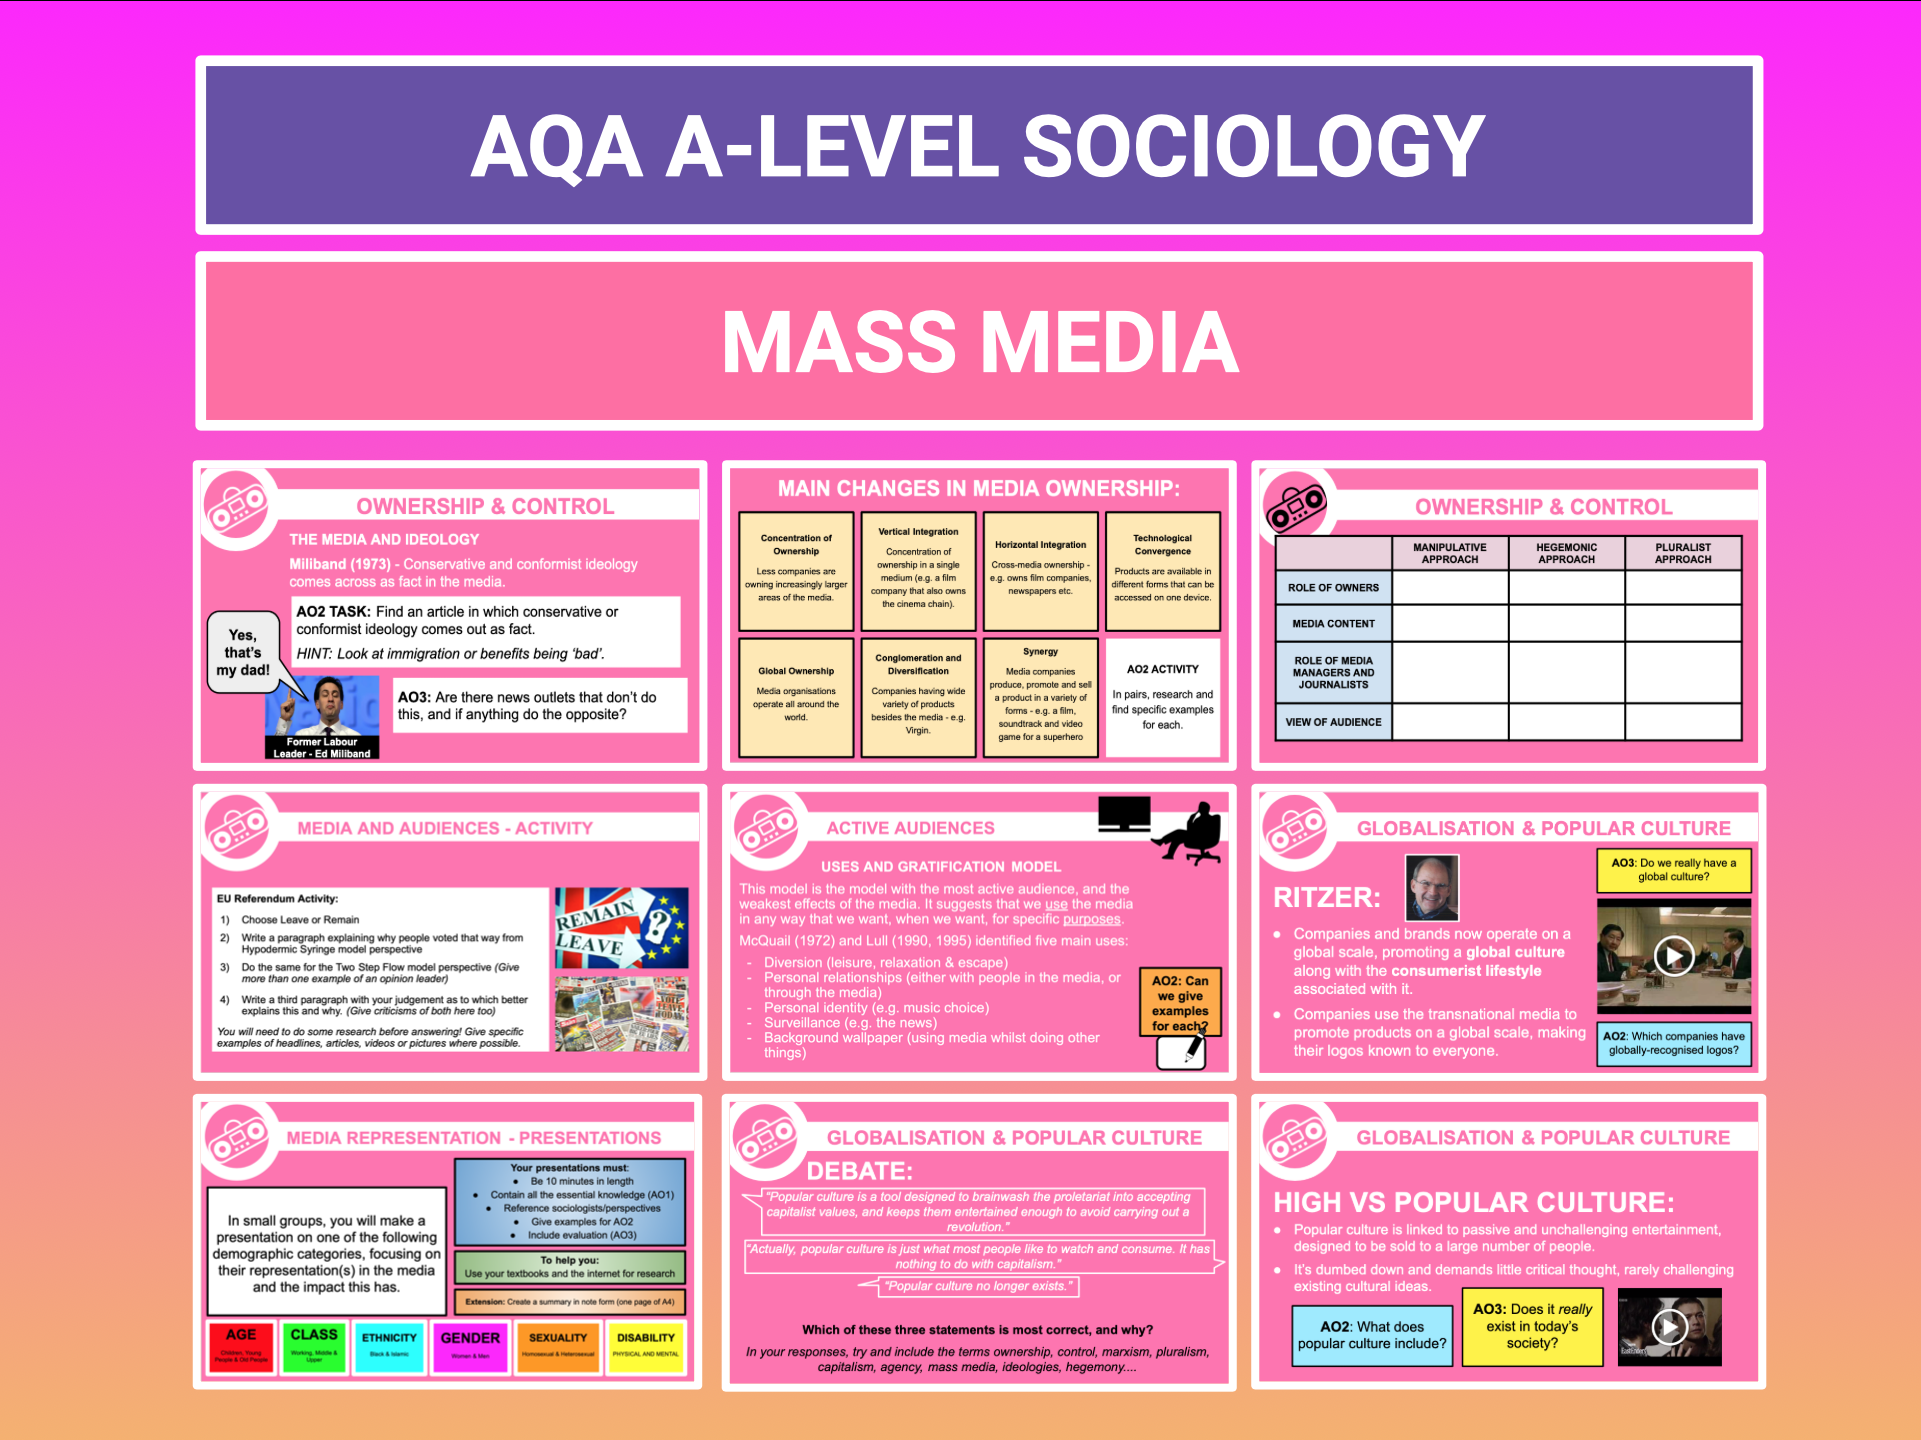 Mass Media - AQA A-level Sociology - Entire Unit